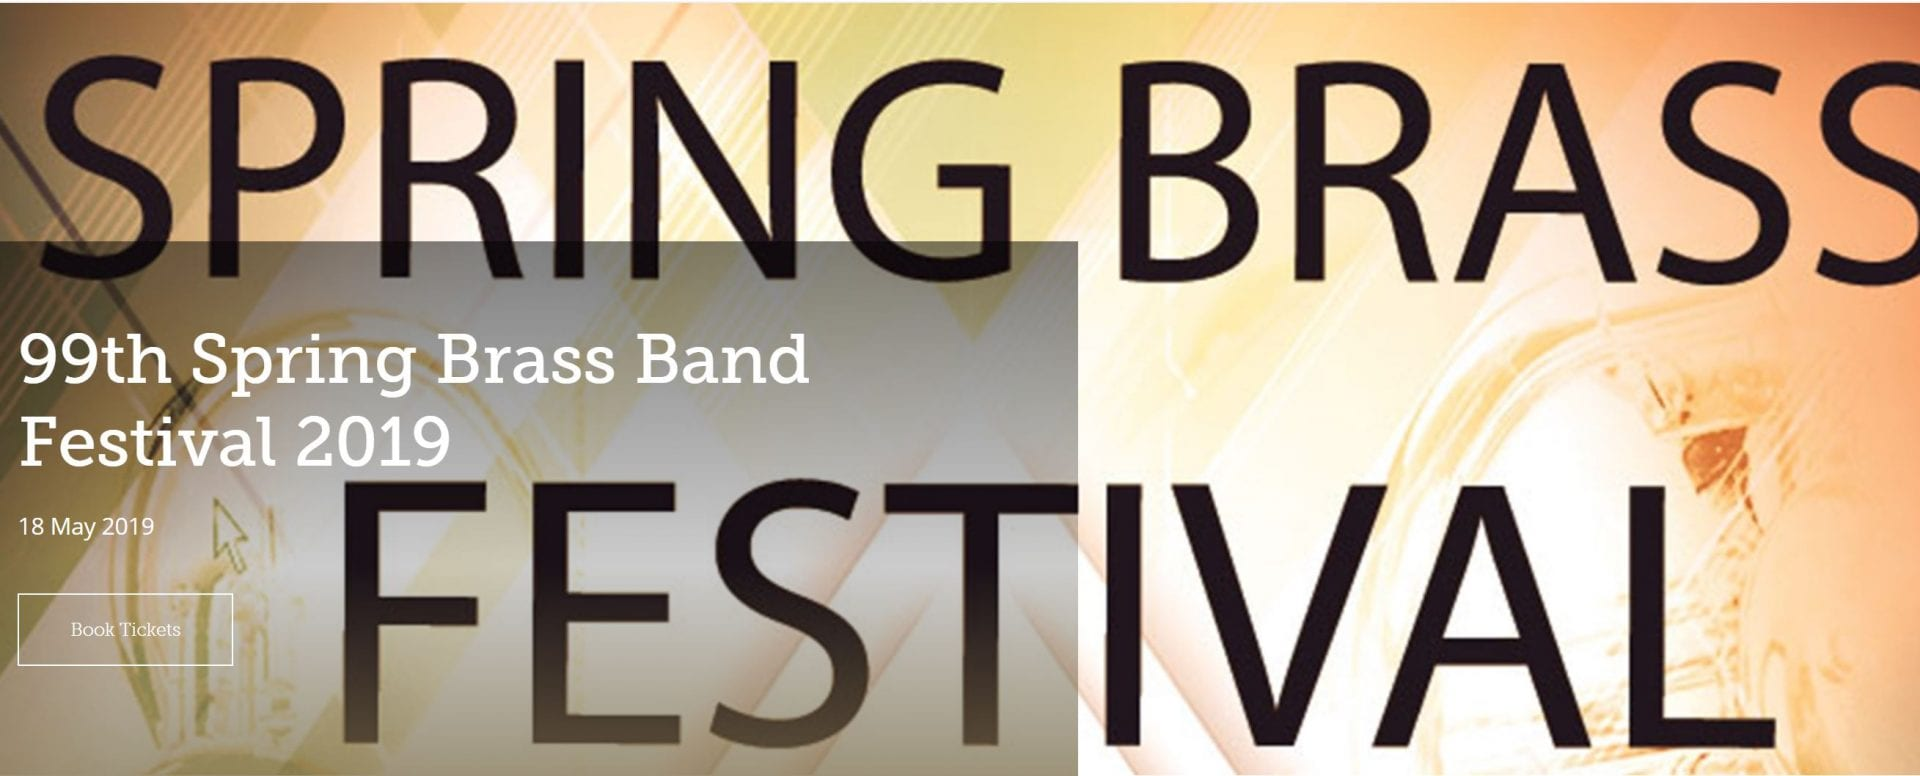 99th Spring Brass Band Festival 2019